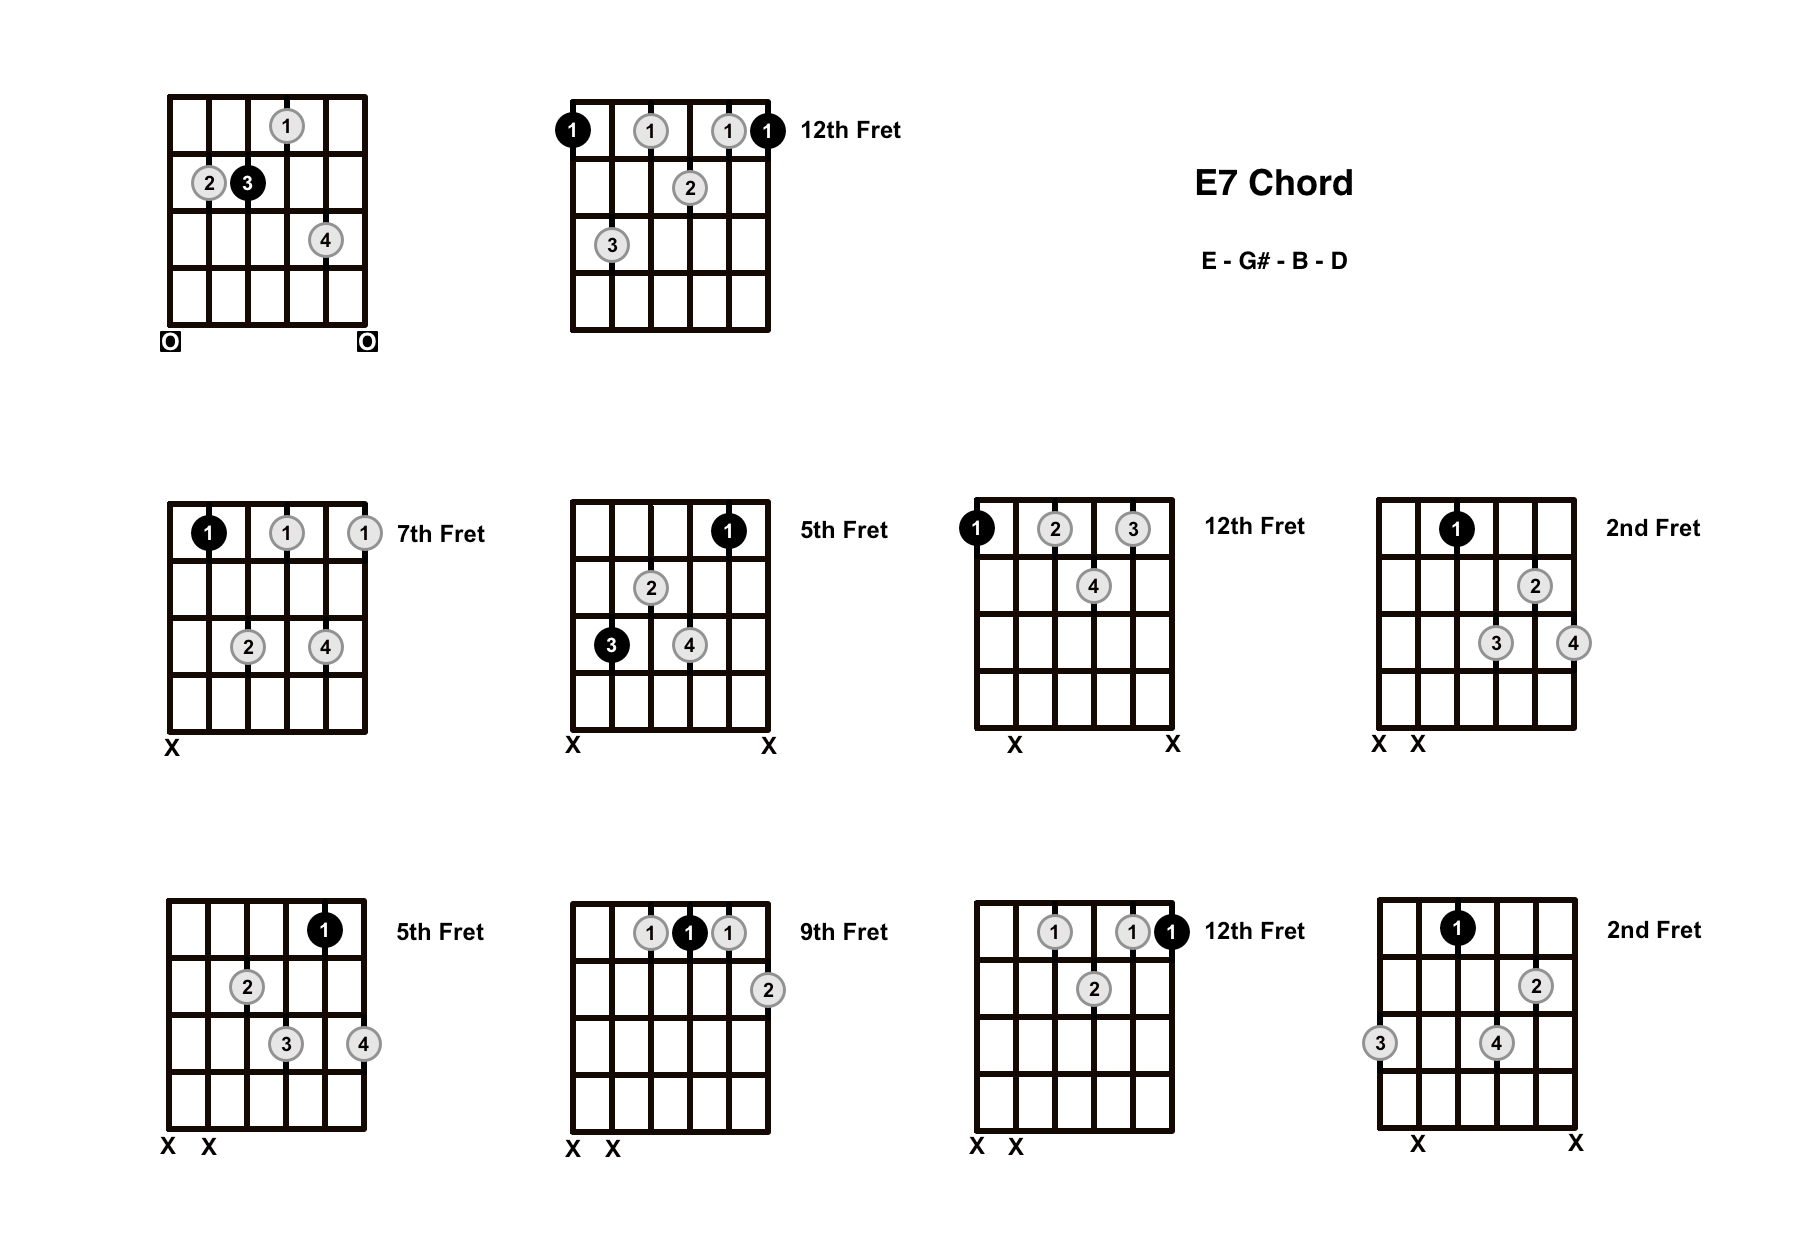 E7 Chord On The Guitar (E Dominant 7) – Diagrams, Finger Positions and Theory